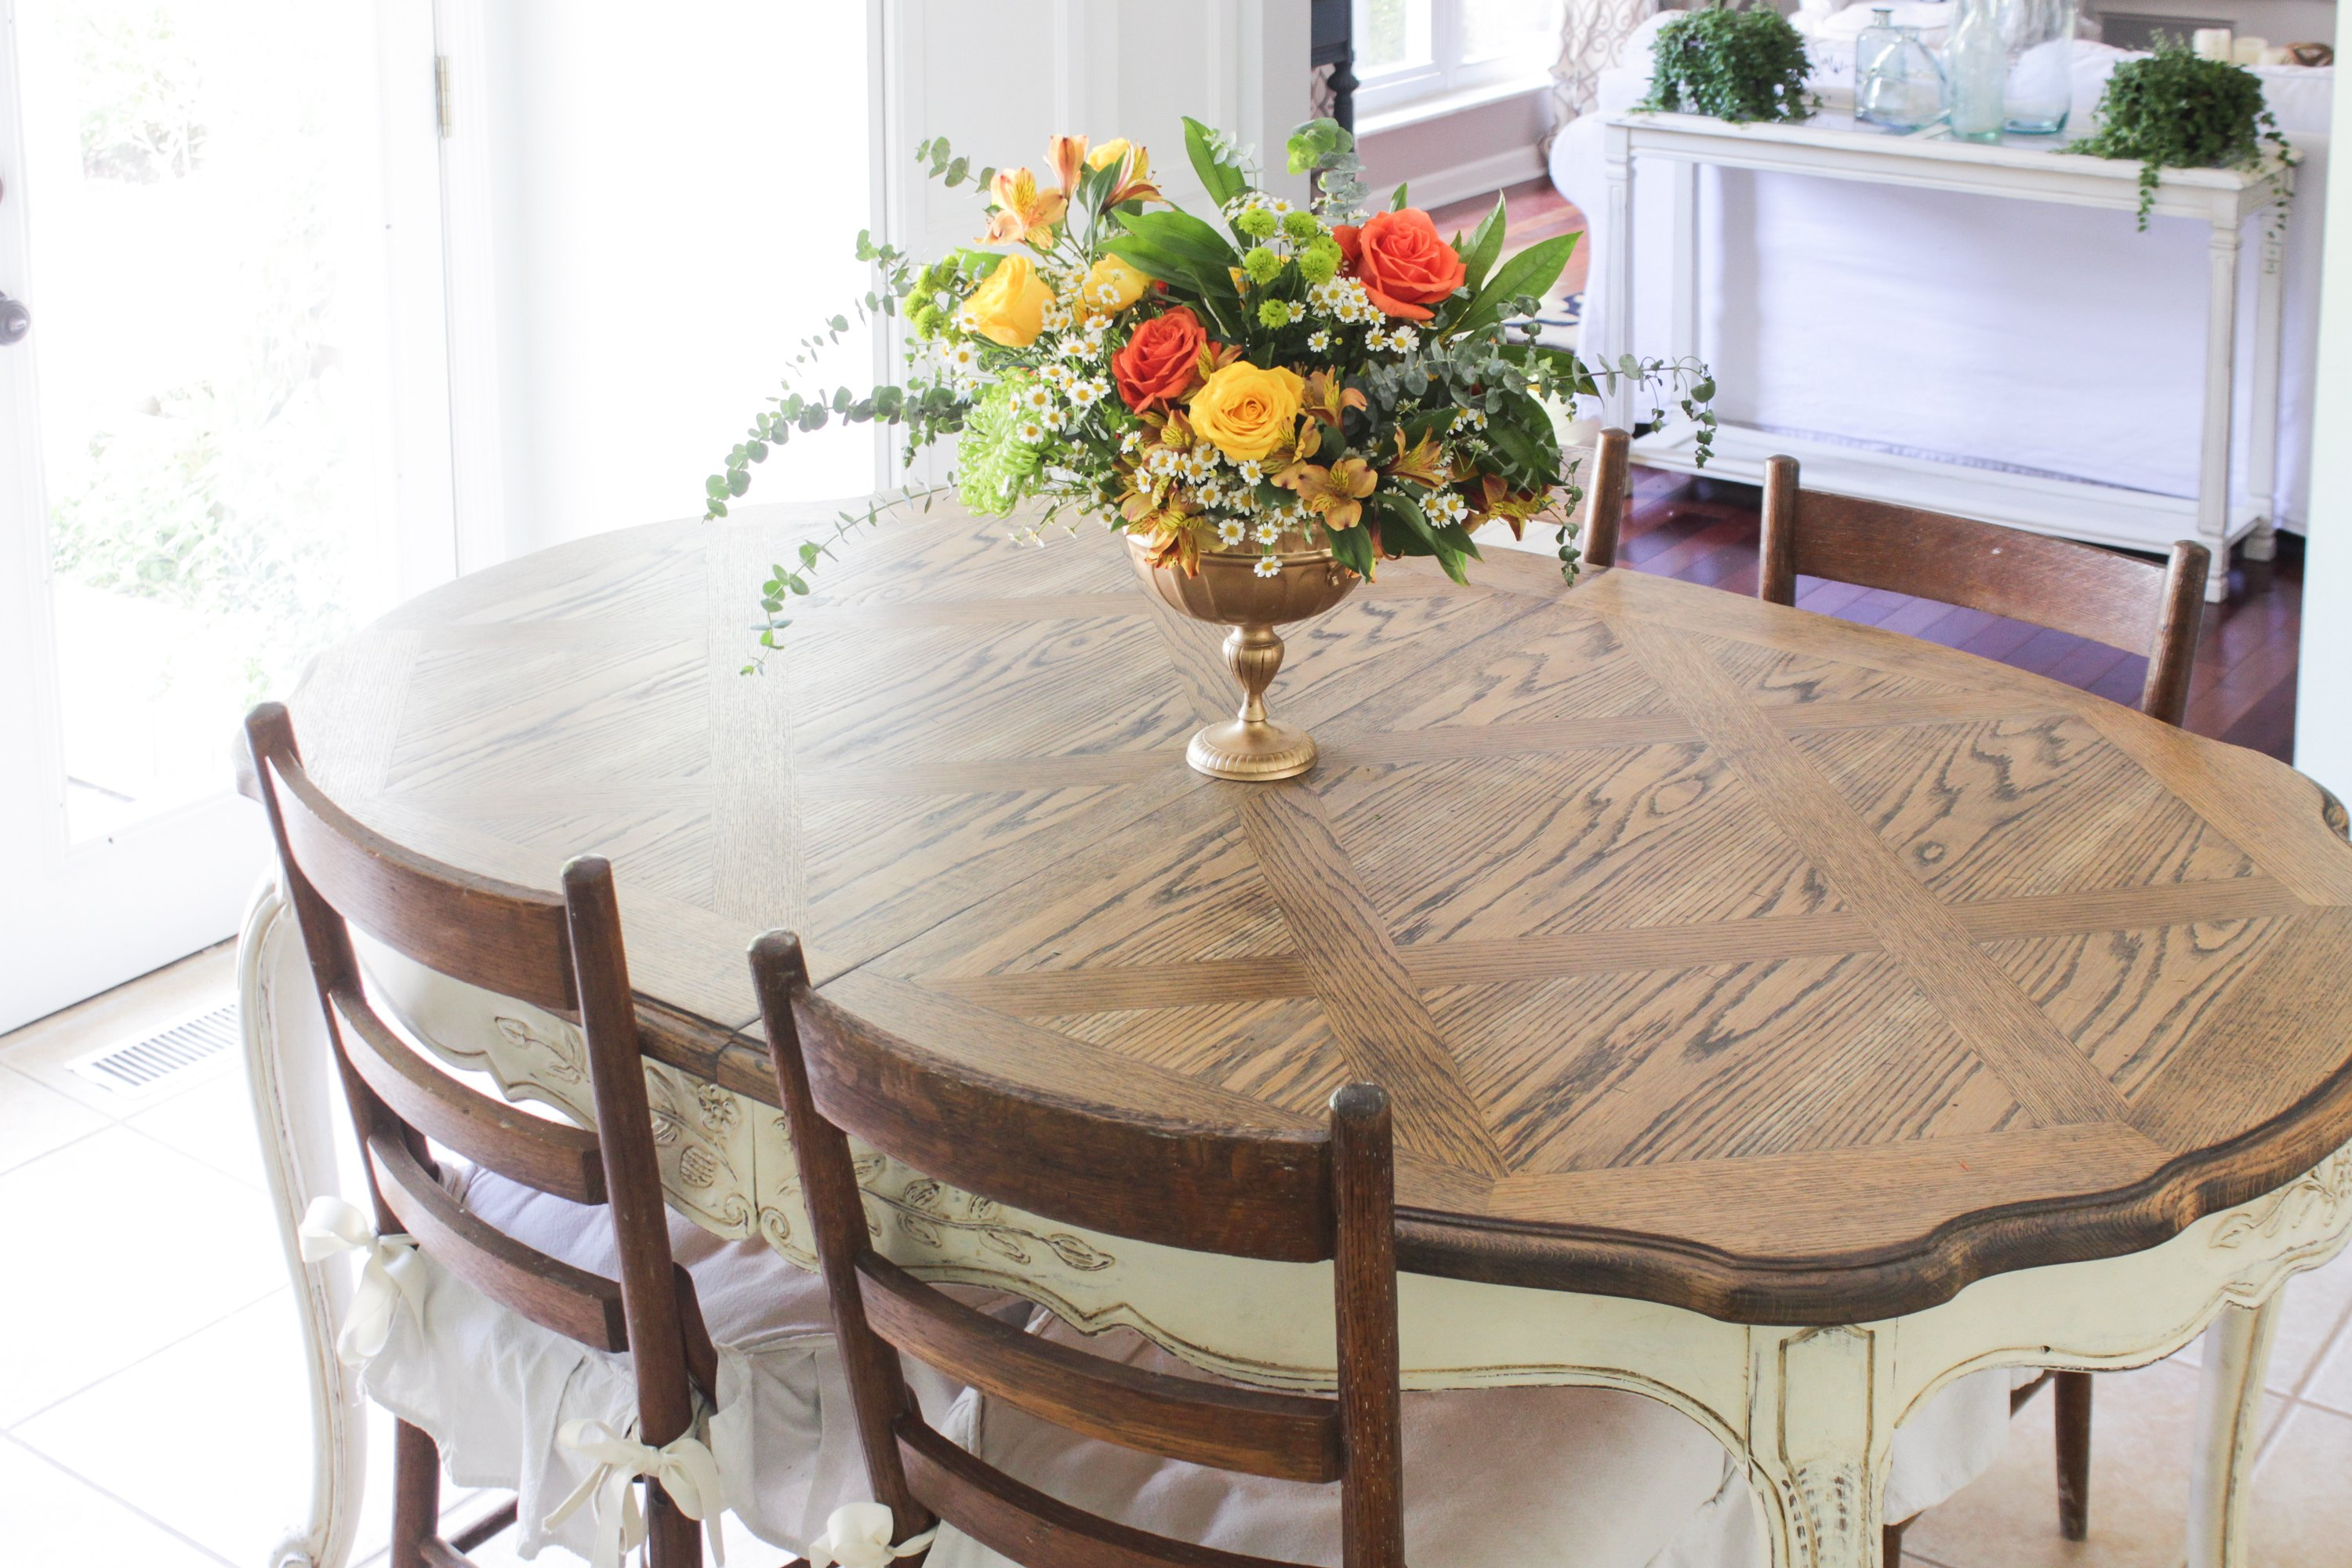 How to Strip and Refinish a Dining Table  eHow